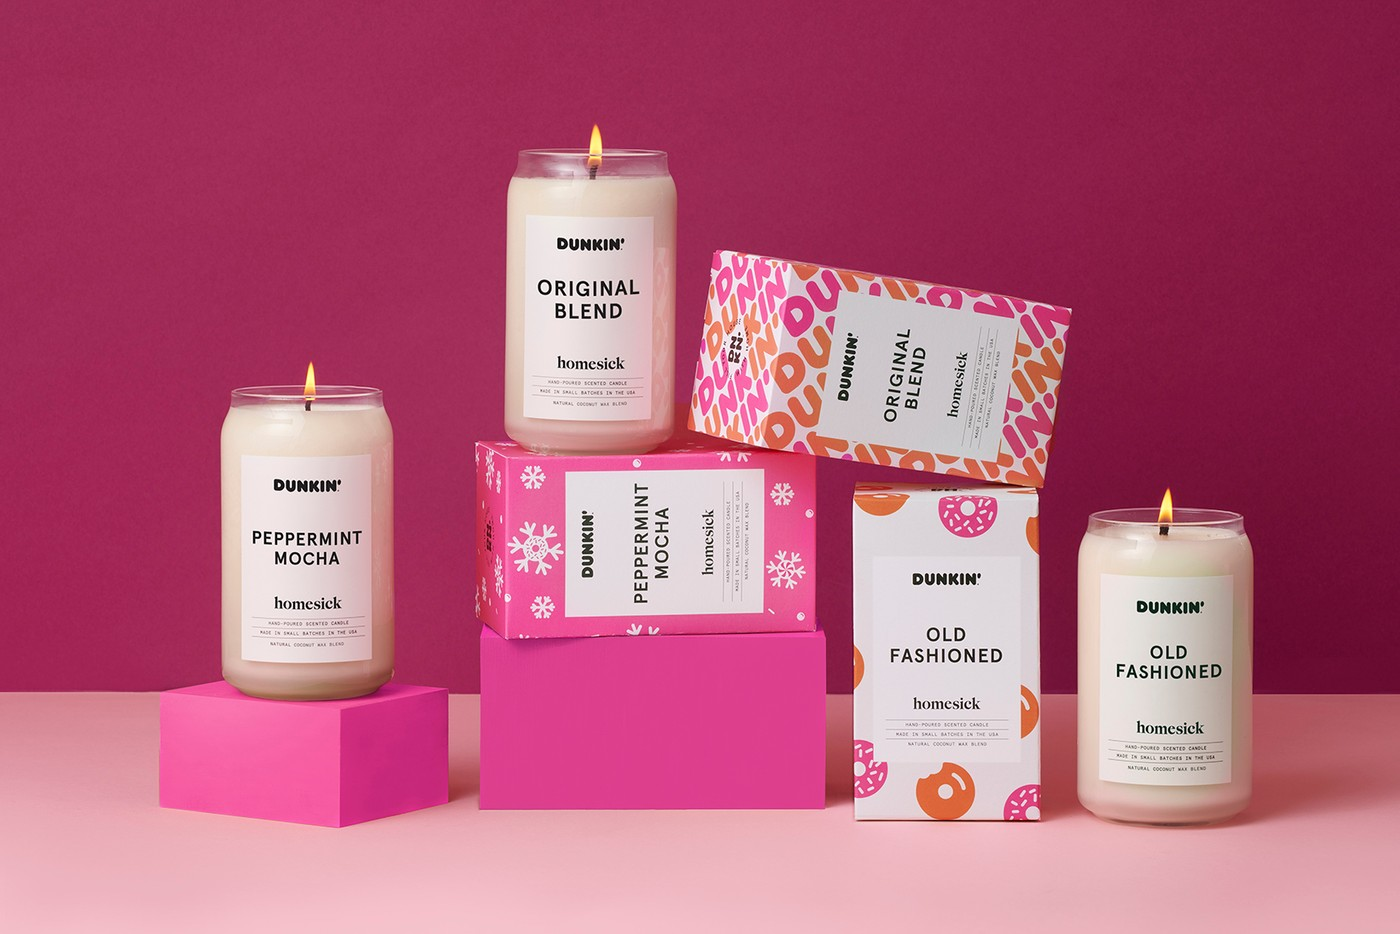 dunkin donuts homesick candle collection coffee peppermint mocha